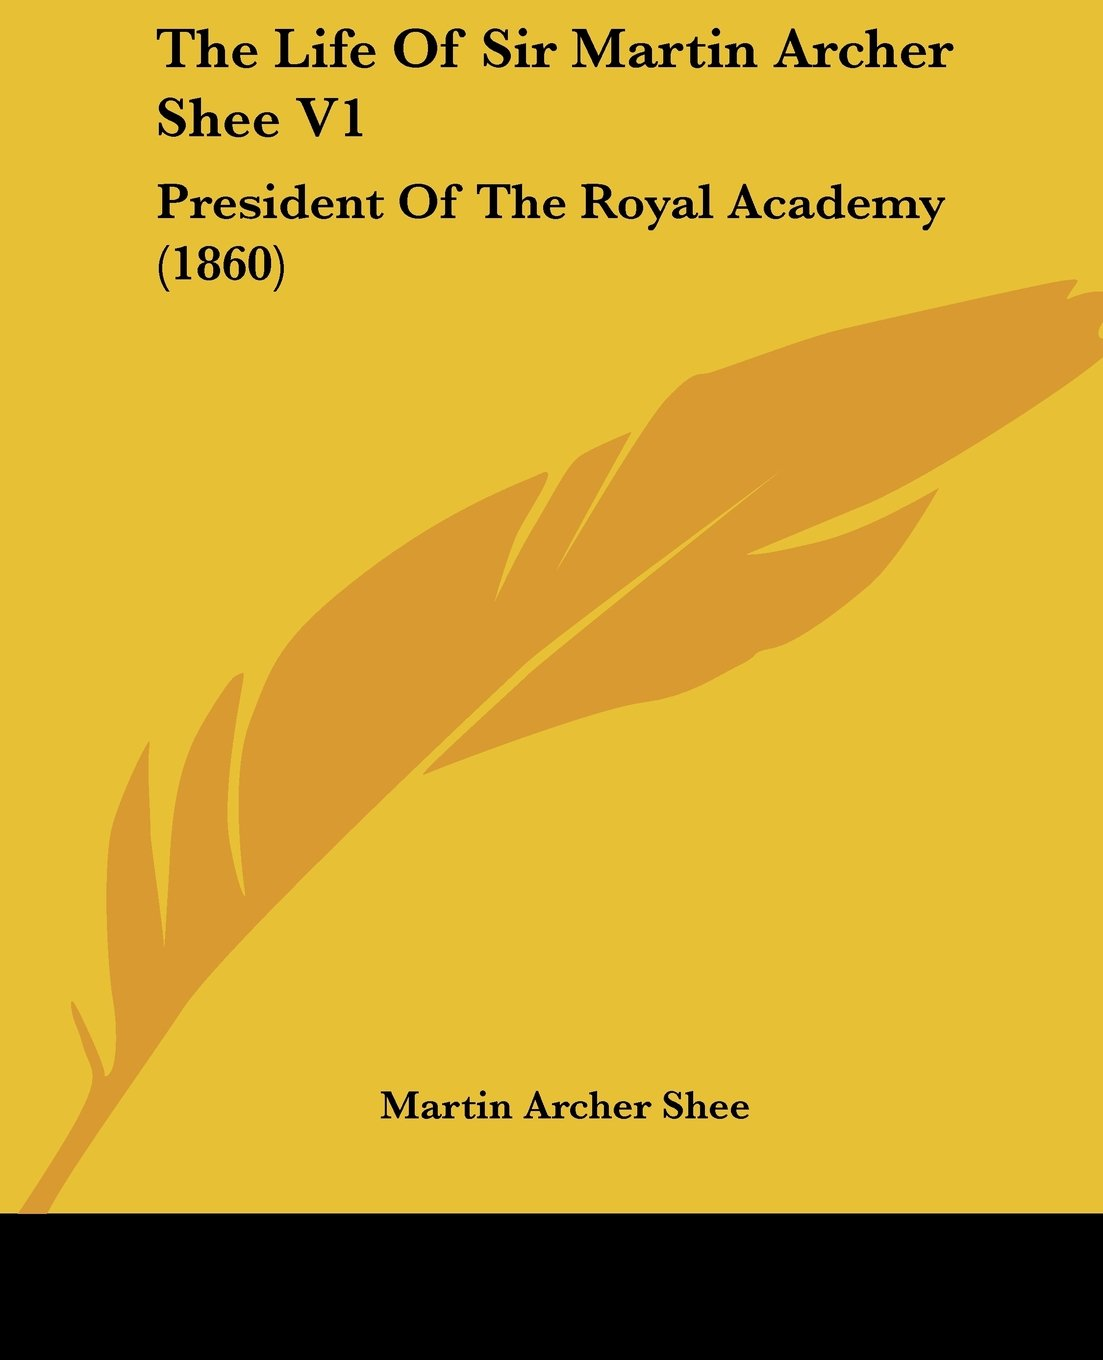 The Life Of Sir Martin Archer Shee V1: President Of The Royal Academy (1860) pdf